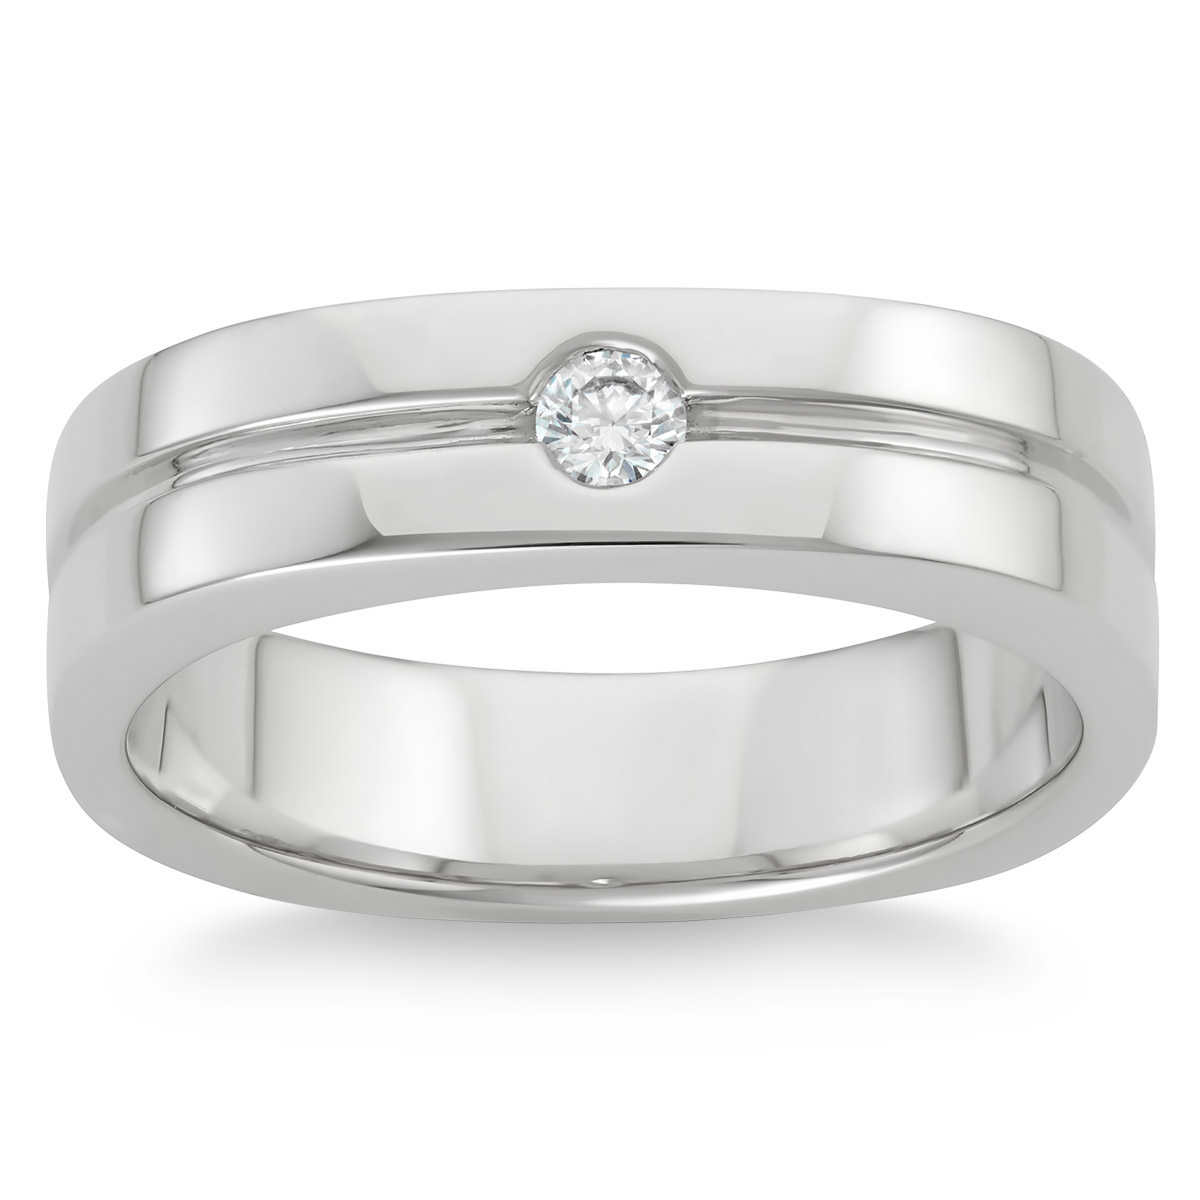 mens rings mens platinum wedding rings Round Brilliant 0 12 ct VS2 Clarity I Color Diamond 14kt White Gold Men s Ring